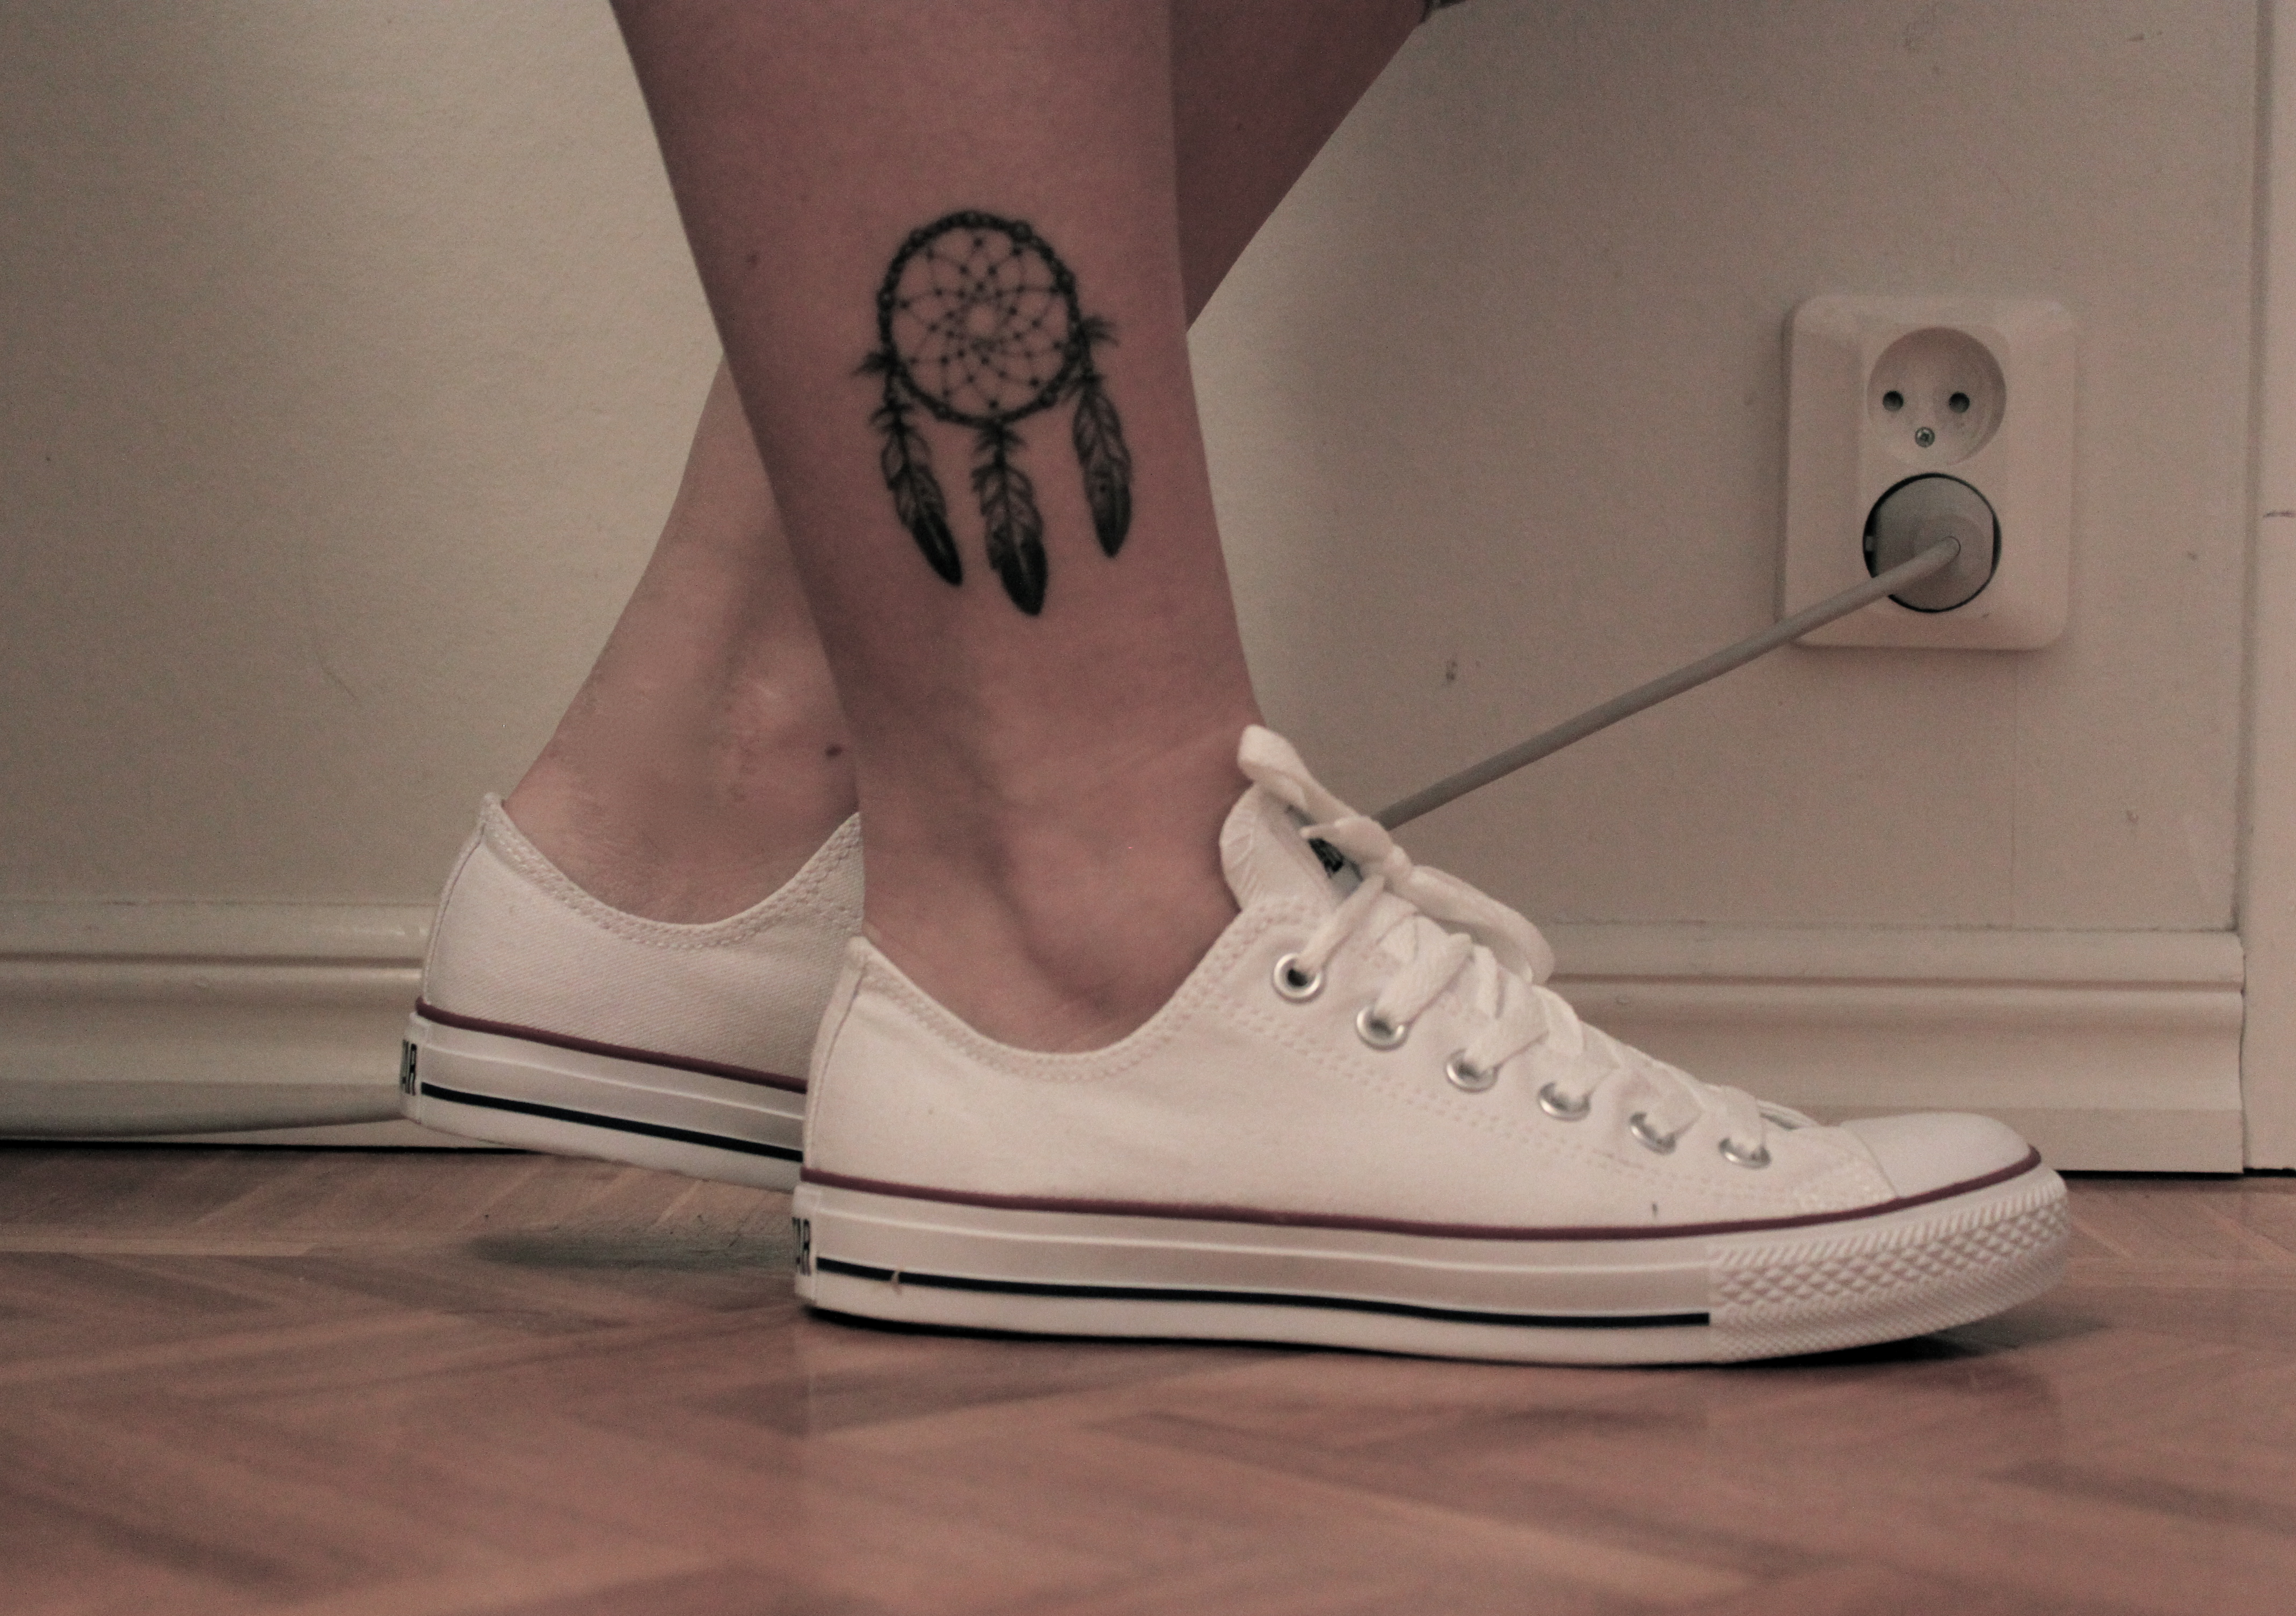 24 Dreamcatcher Tattoos On Foot